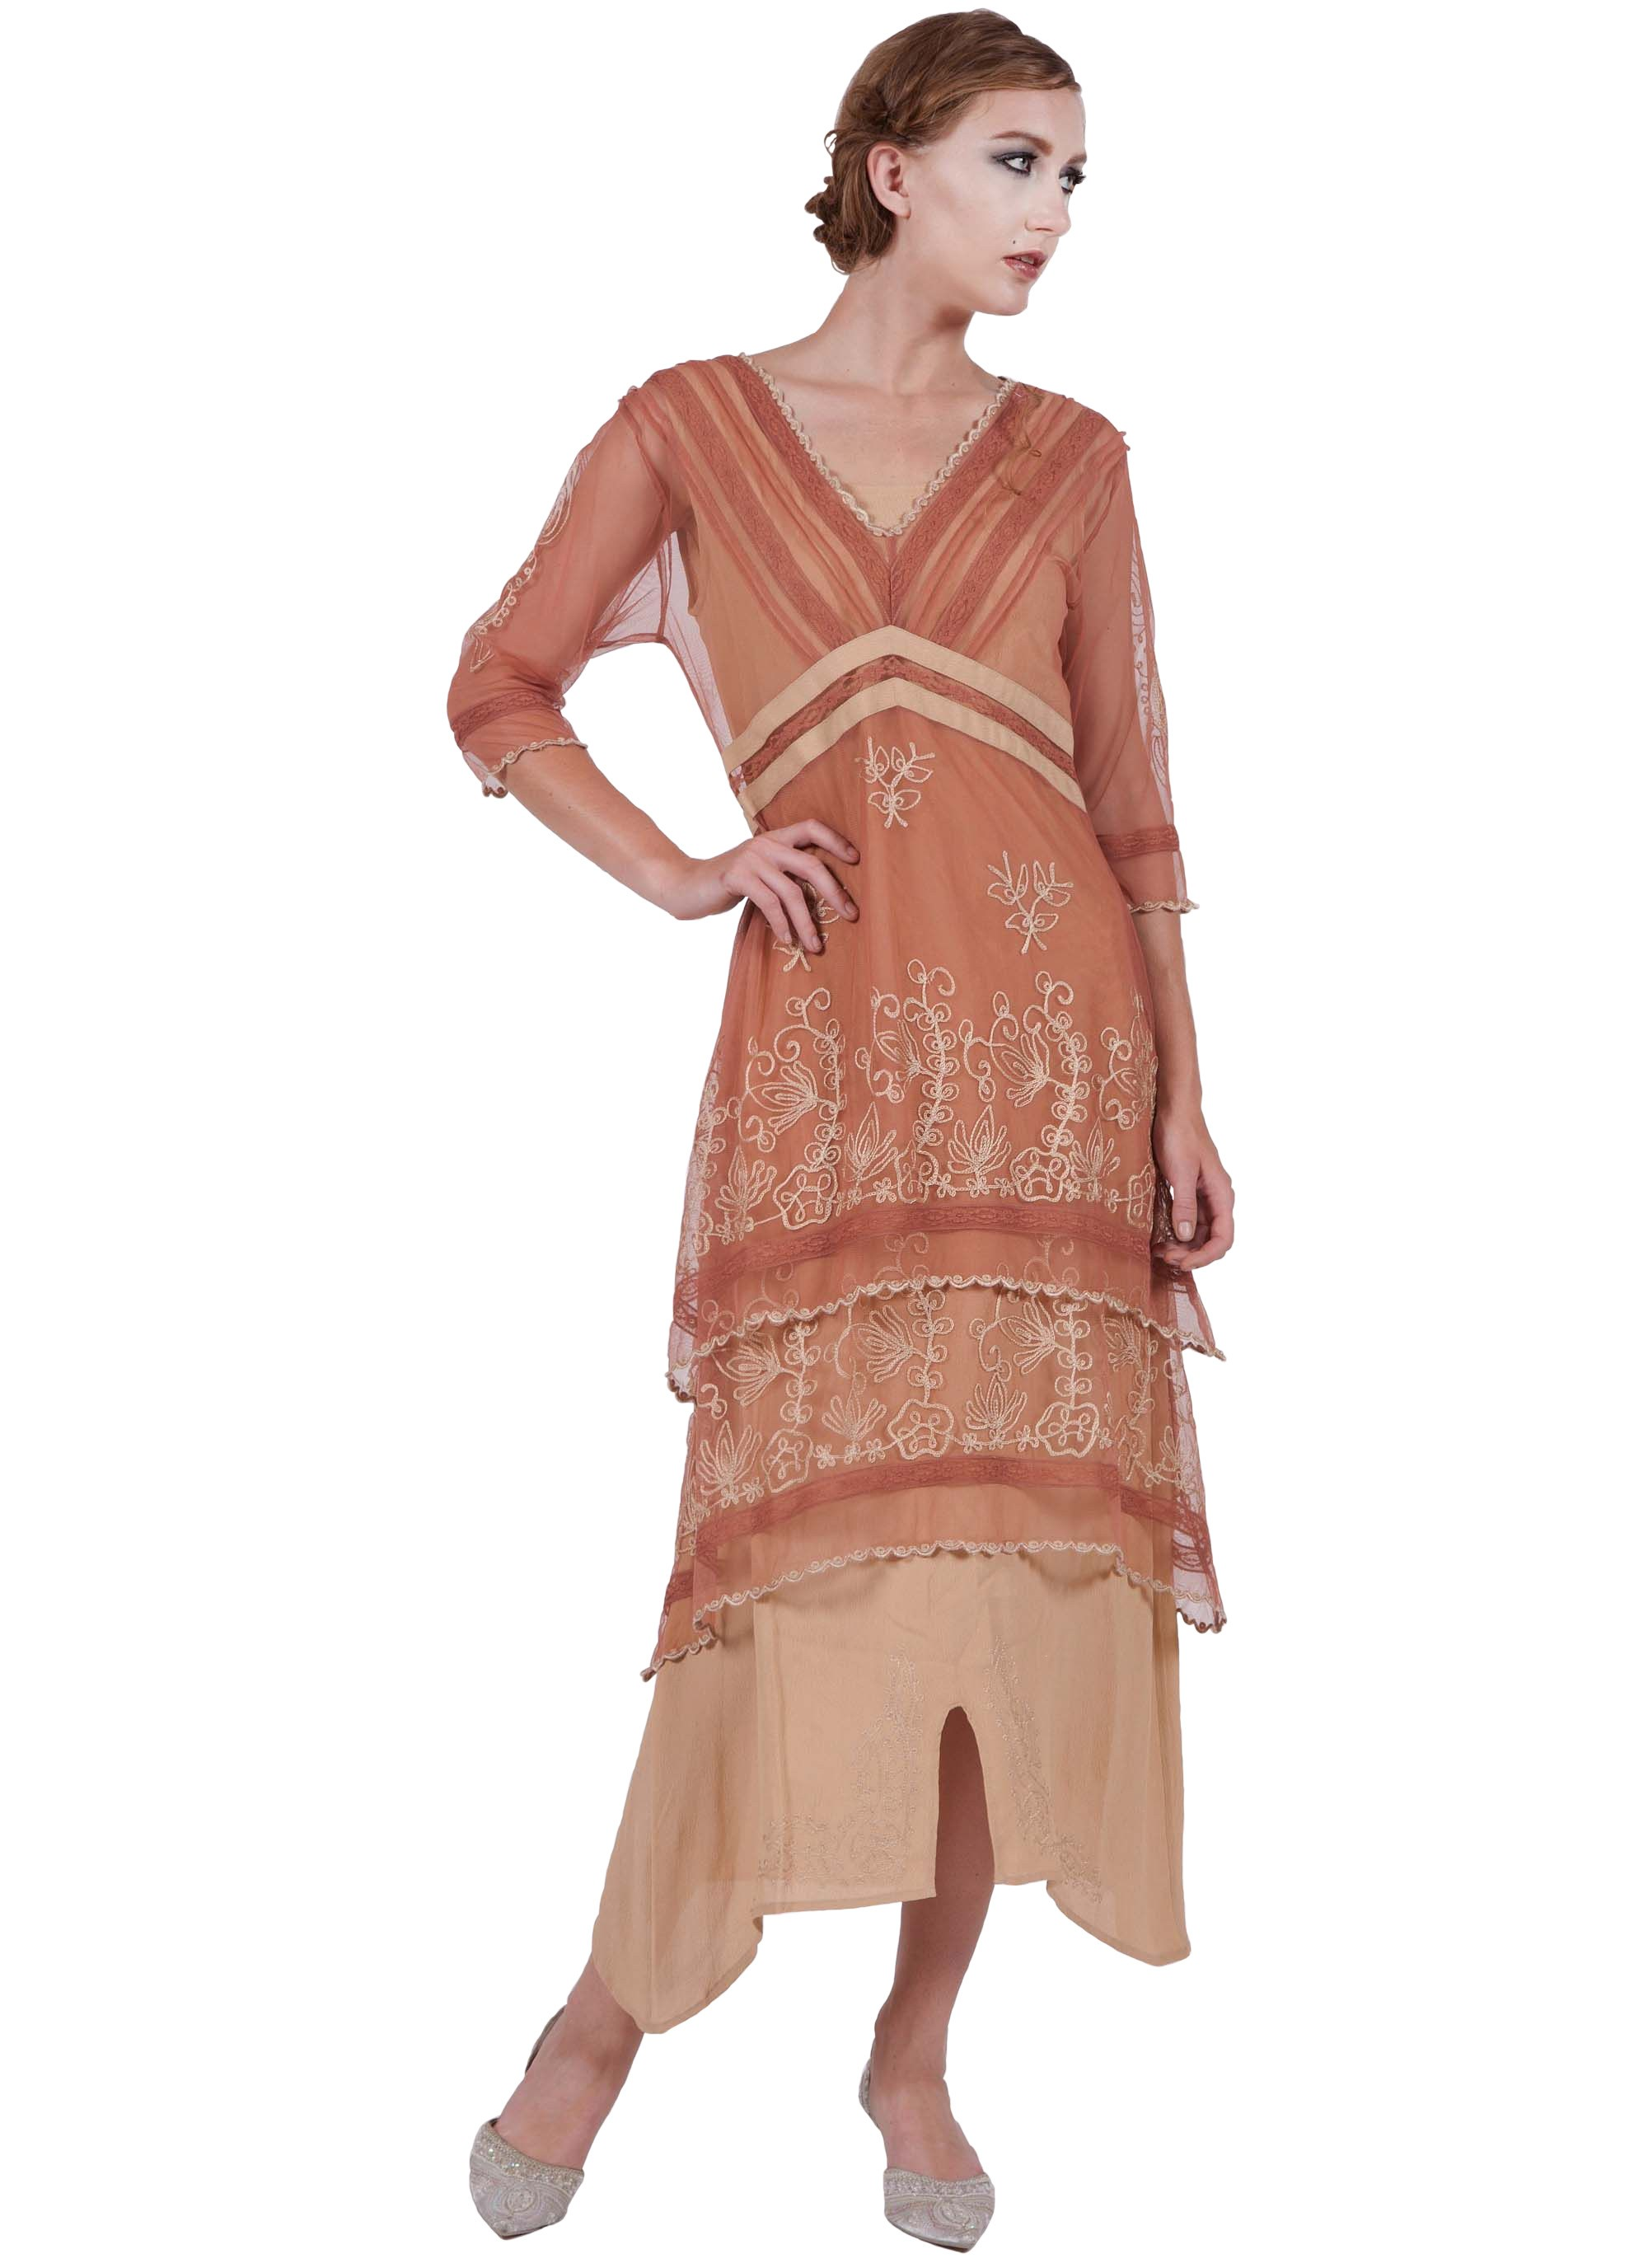 Vintage Anic Dress In Rosegold